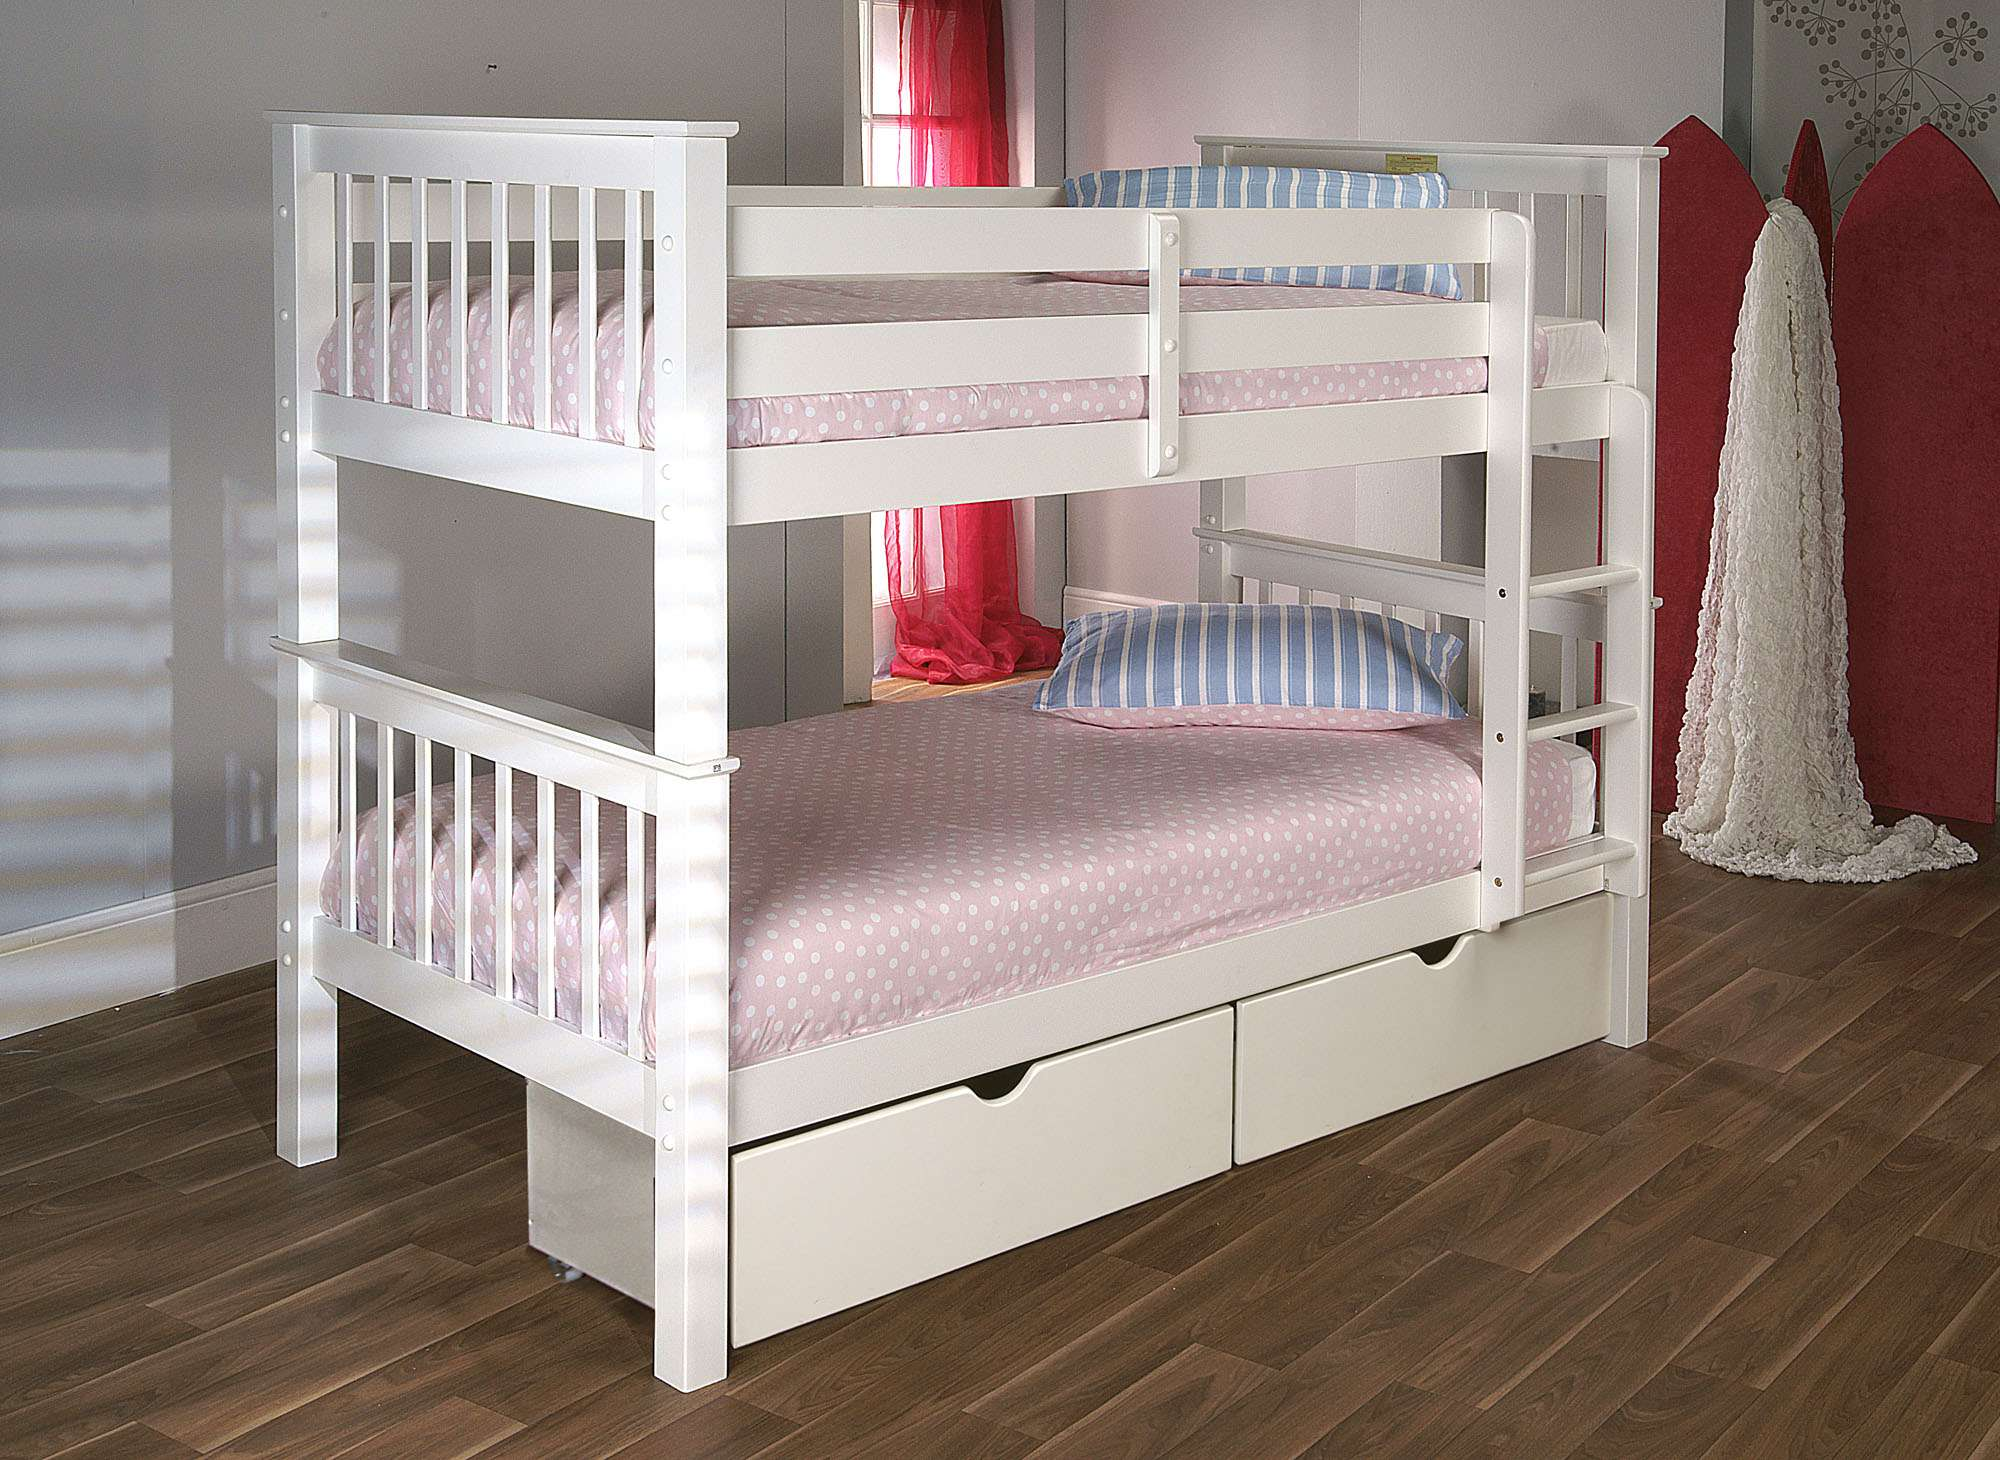 Home Beds Children Wooden Bunk Bed Pine White